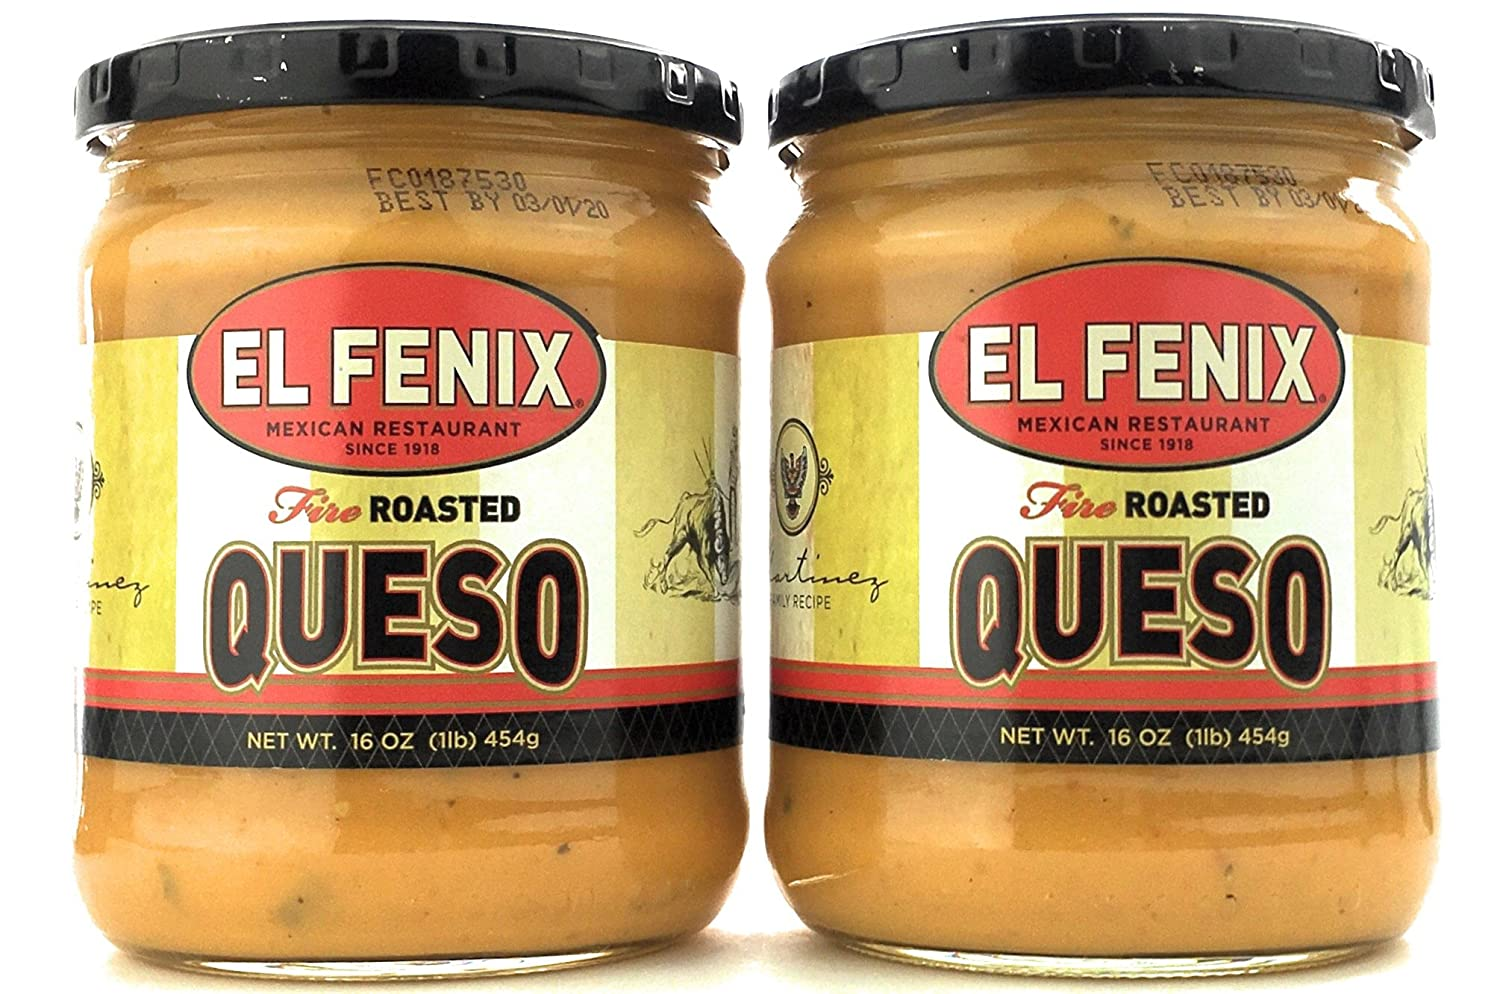 El Fenix Fire Roasted Queso 16 Oz (Pack of 2): Amazon.com: Grocery & Gourmet Food